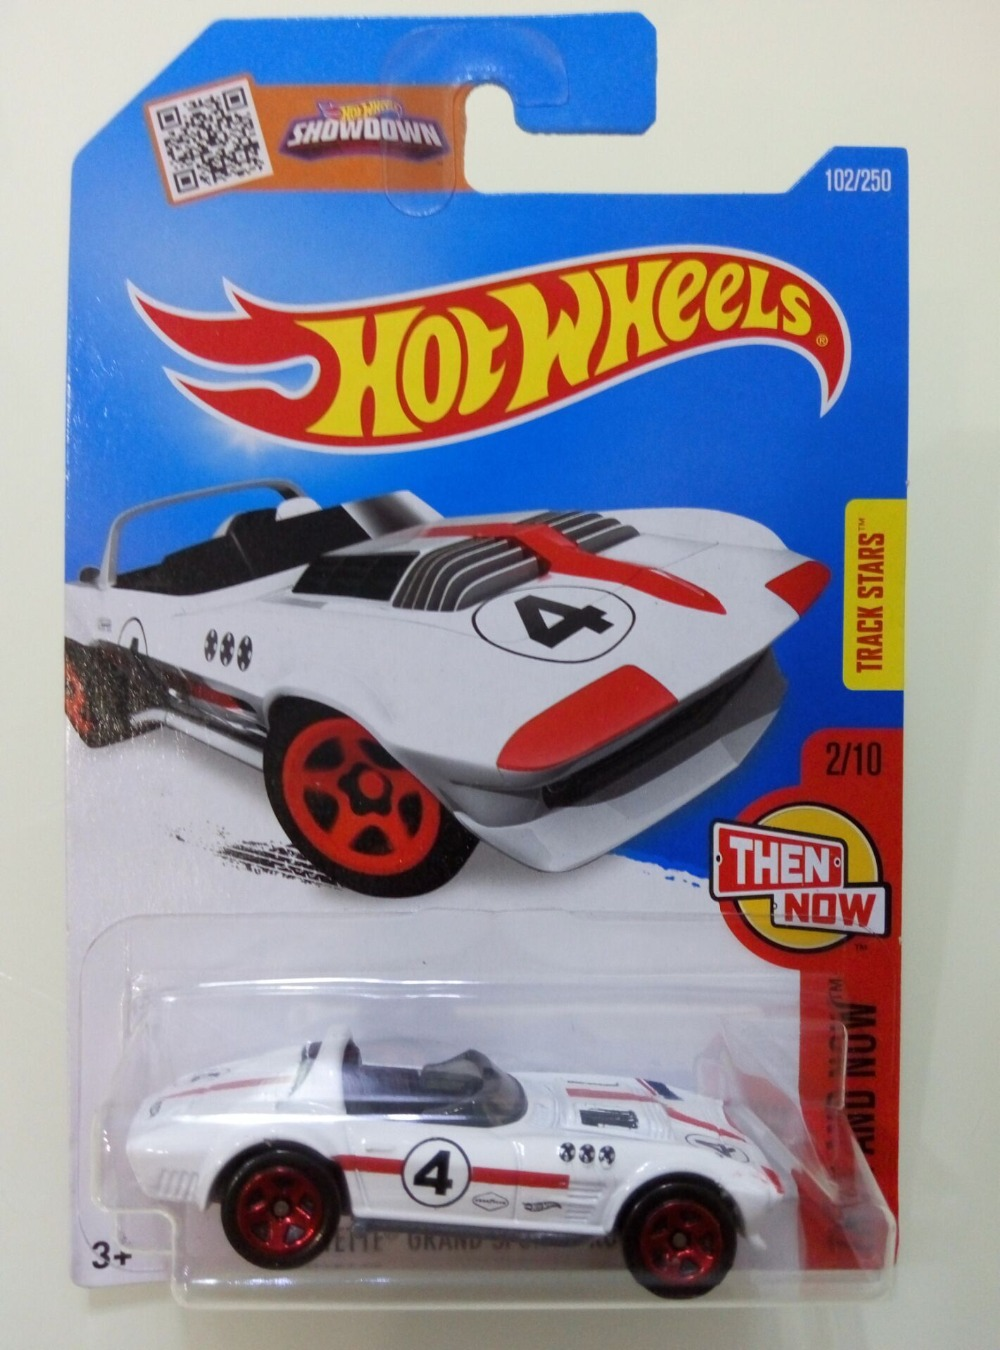 CORVETTE GRAND SPORT ROADSTER,Whosale Genuine Boy girl children Toys sport car HOT WHEELS Metal models Toys With Original Box(China (Mainland))